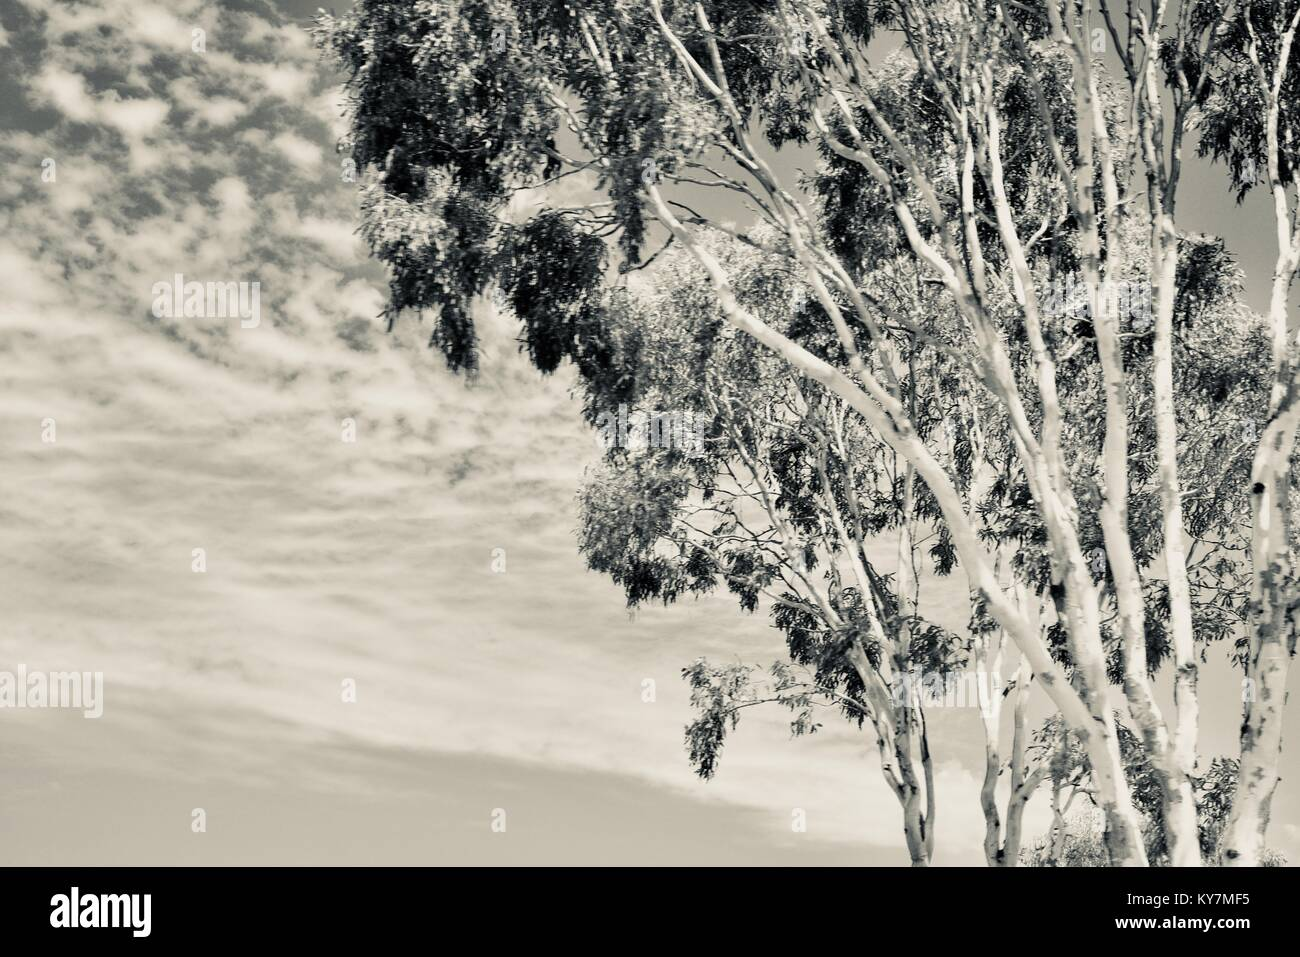 Gumtree with cloudy sky background, in silvertone, black and white, grayscale, Farmland and bush near Clairview, - Stock Image